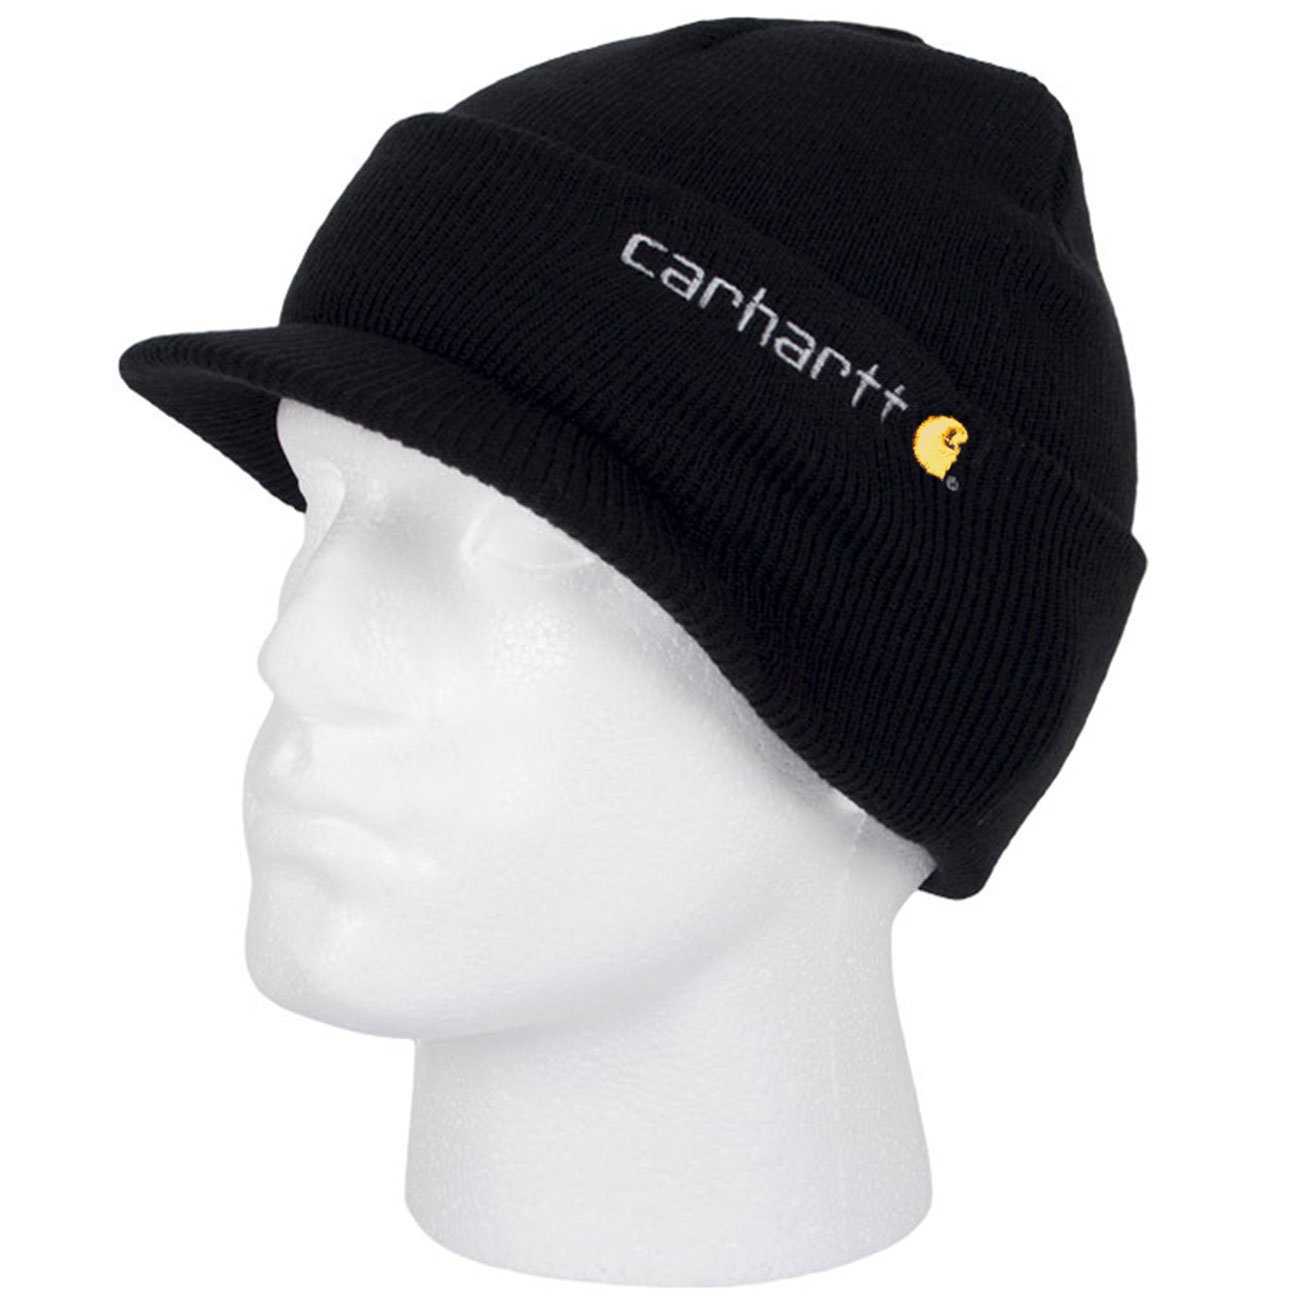 Carhartt Winter Hat with Visor - Black CHA164BLK Mens Beanie with peak Hat  CHA164BLK-Universal  Amazon.co.uk  Clothing 5af24b2b0a8